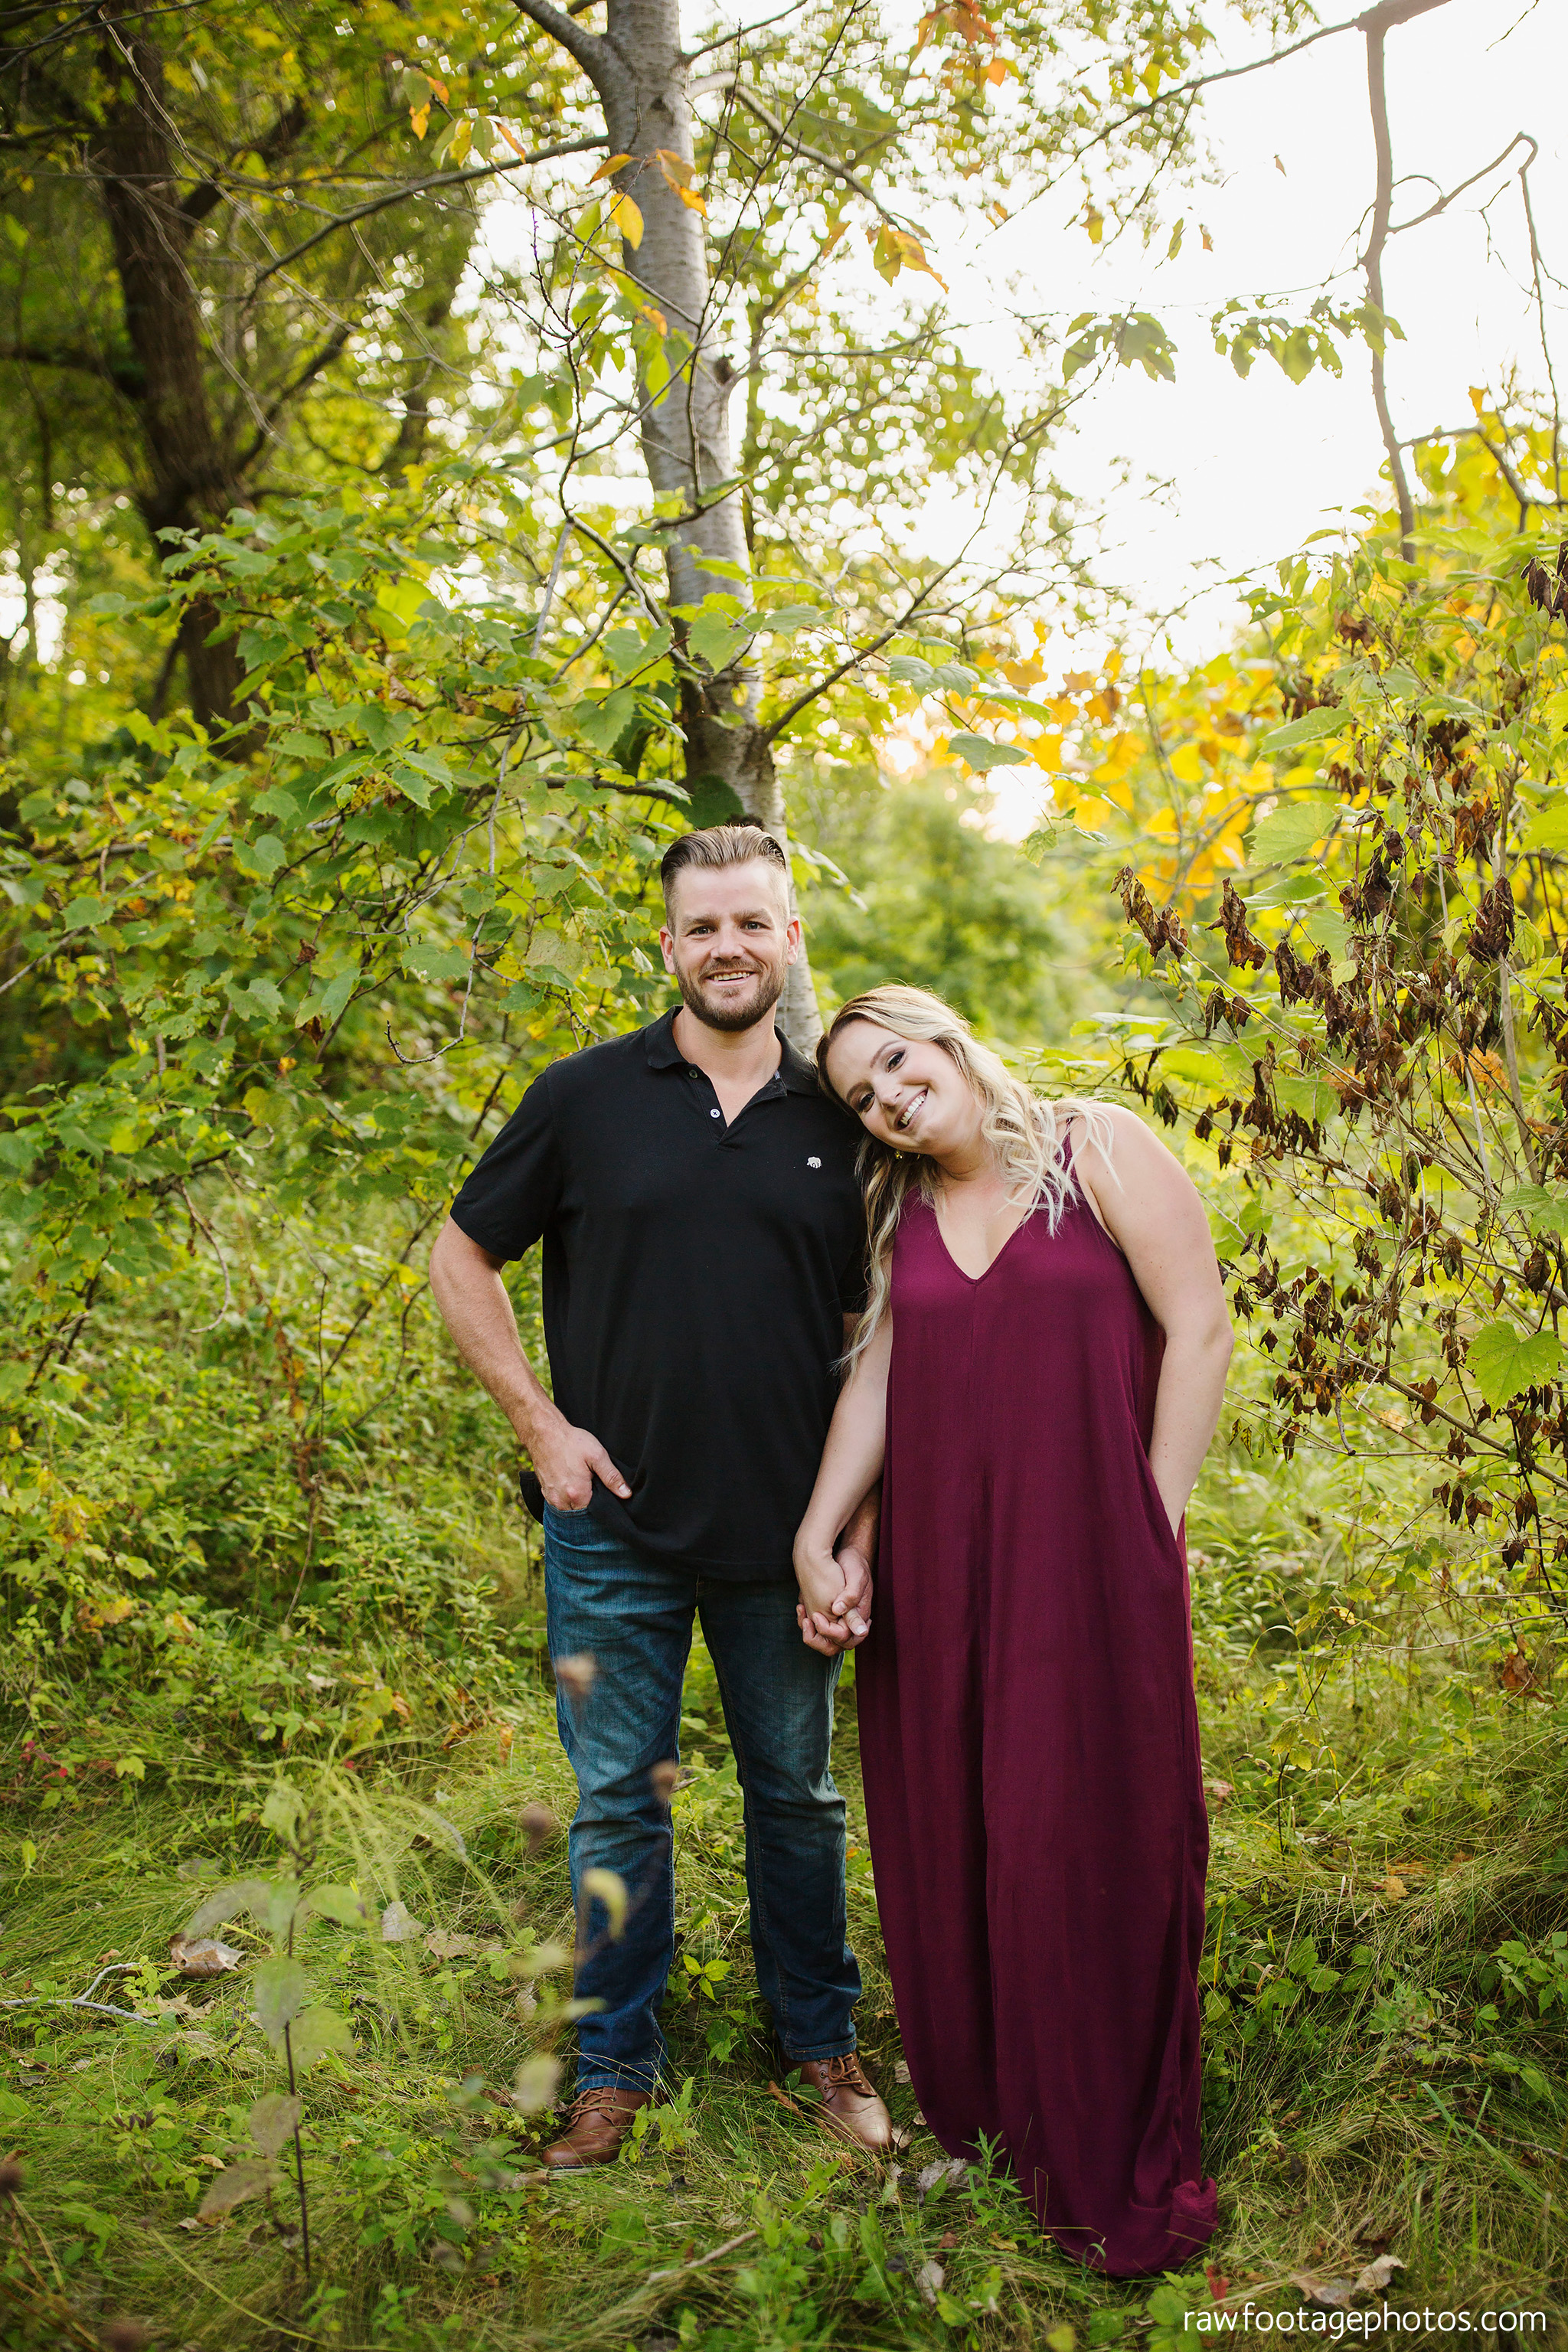 london_ontario_wedding_photographer-woodsy_engagement_session-e_session-engagement_photos-medway_creek-medway_heritage_forest-raw_forest_photography017.jpg